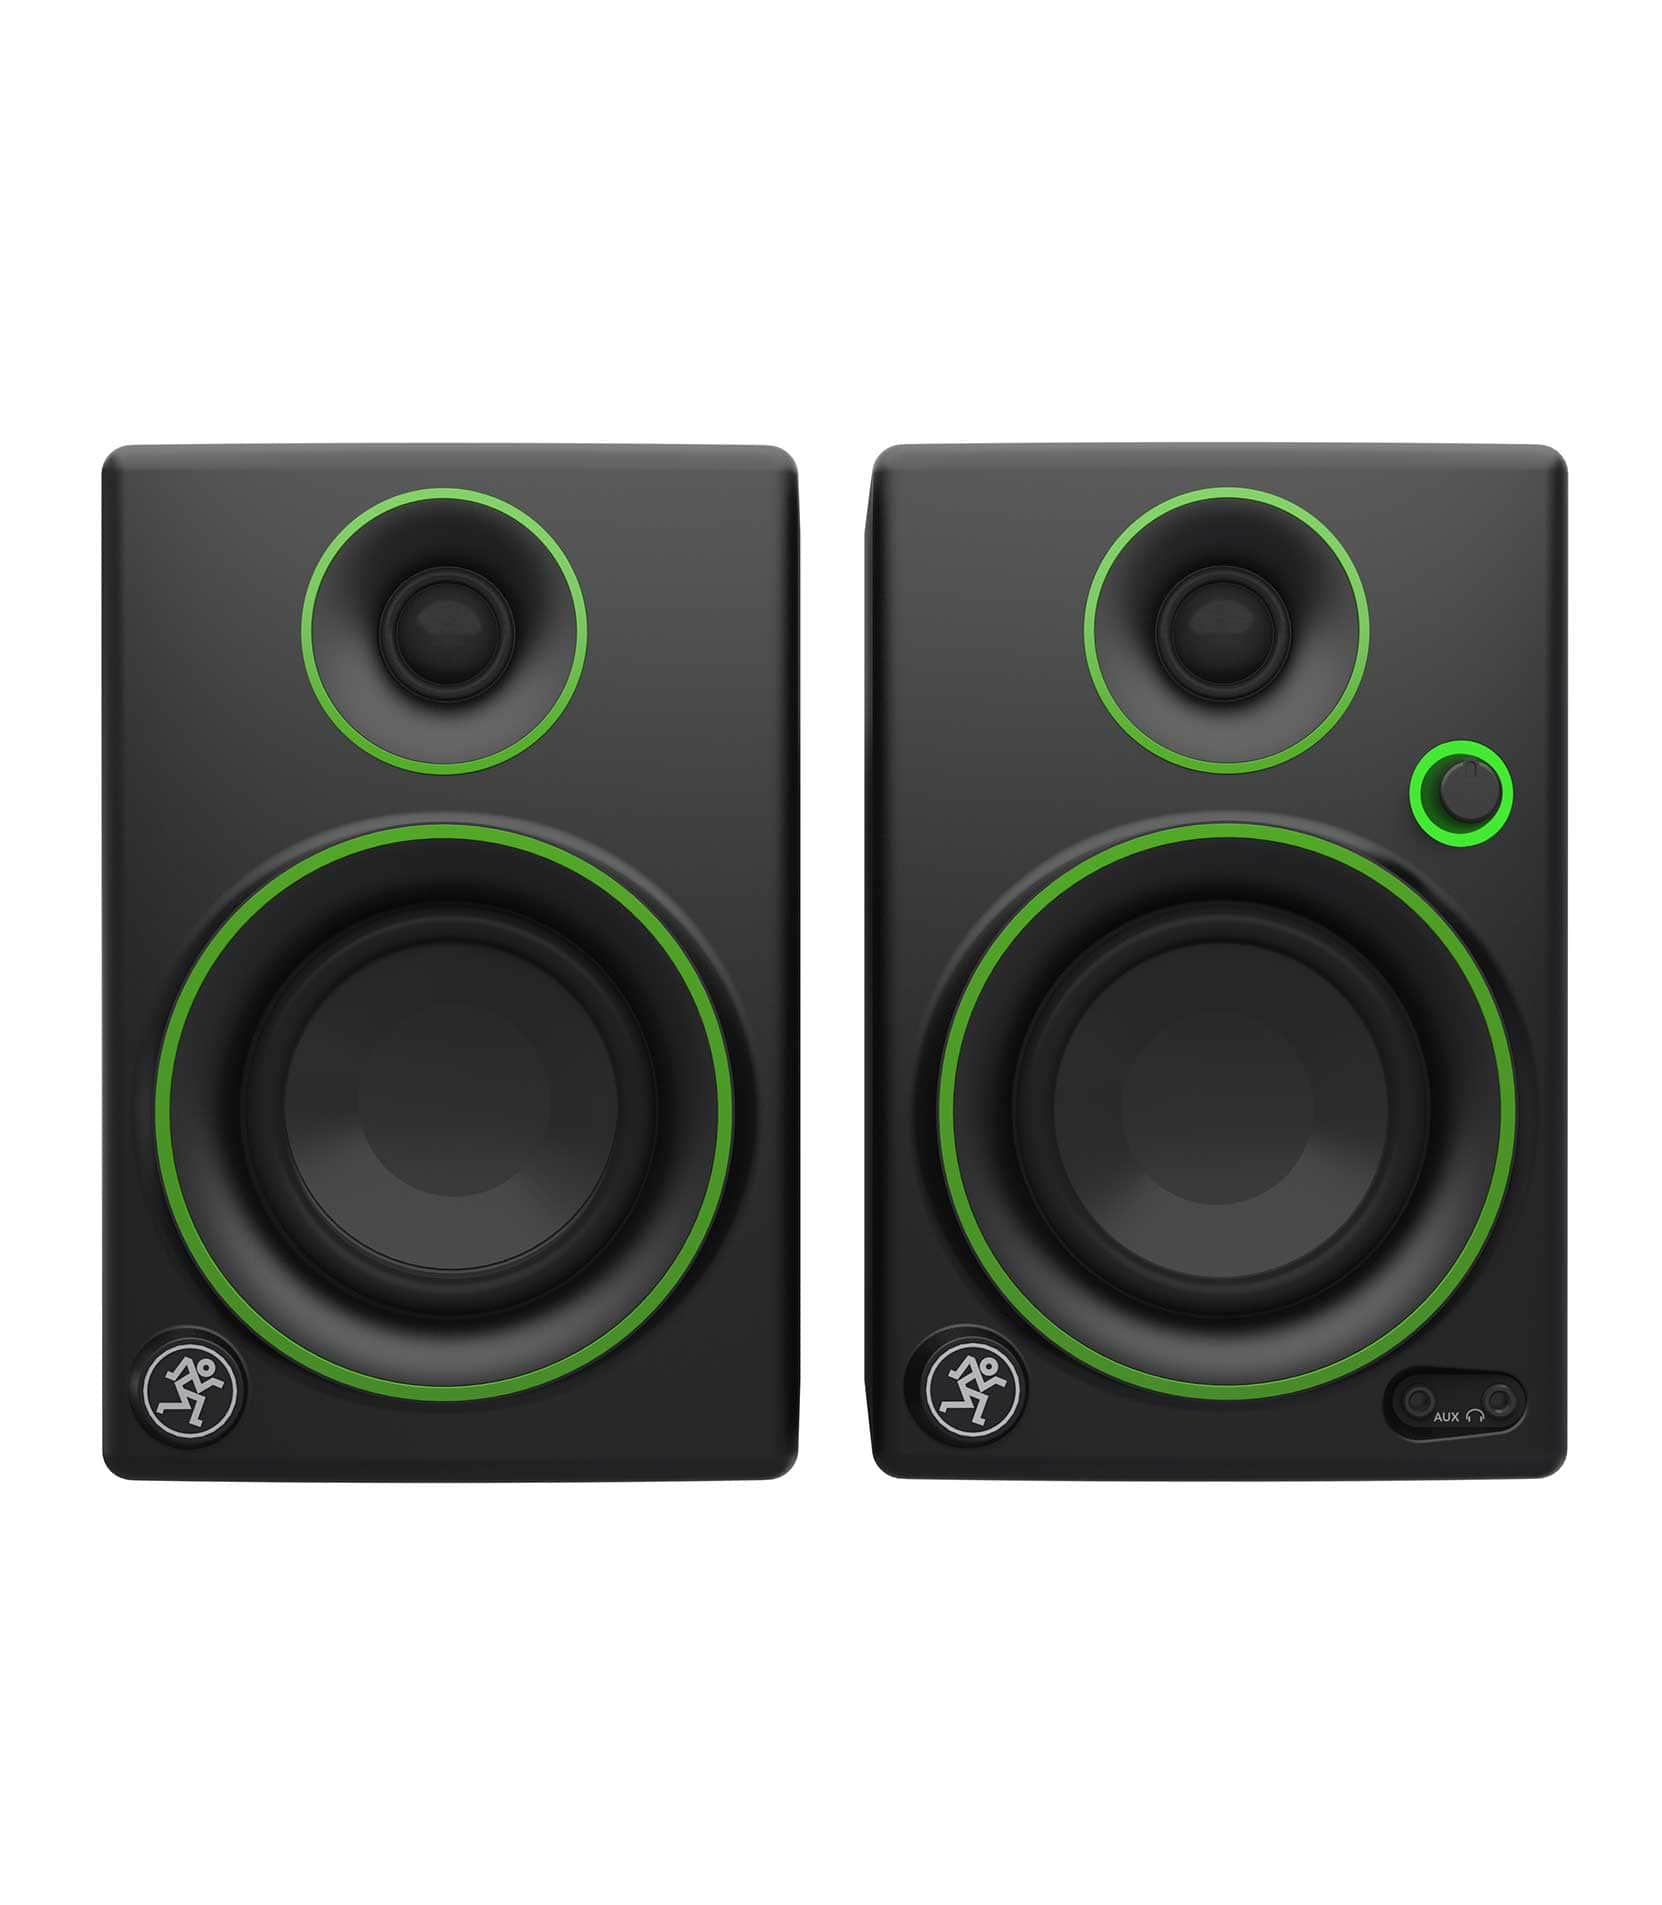 buy mackie studio monitors cr4bt pair online at best price in dubai uae melody house. Black Bedroom Furniture Sets. Home Design Ideas